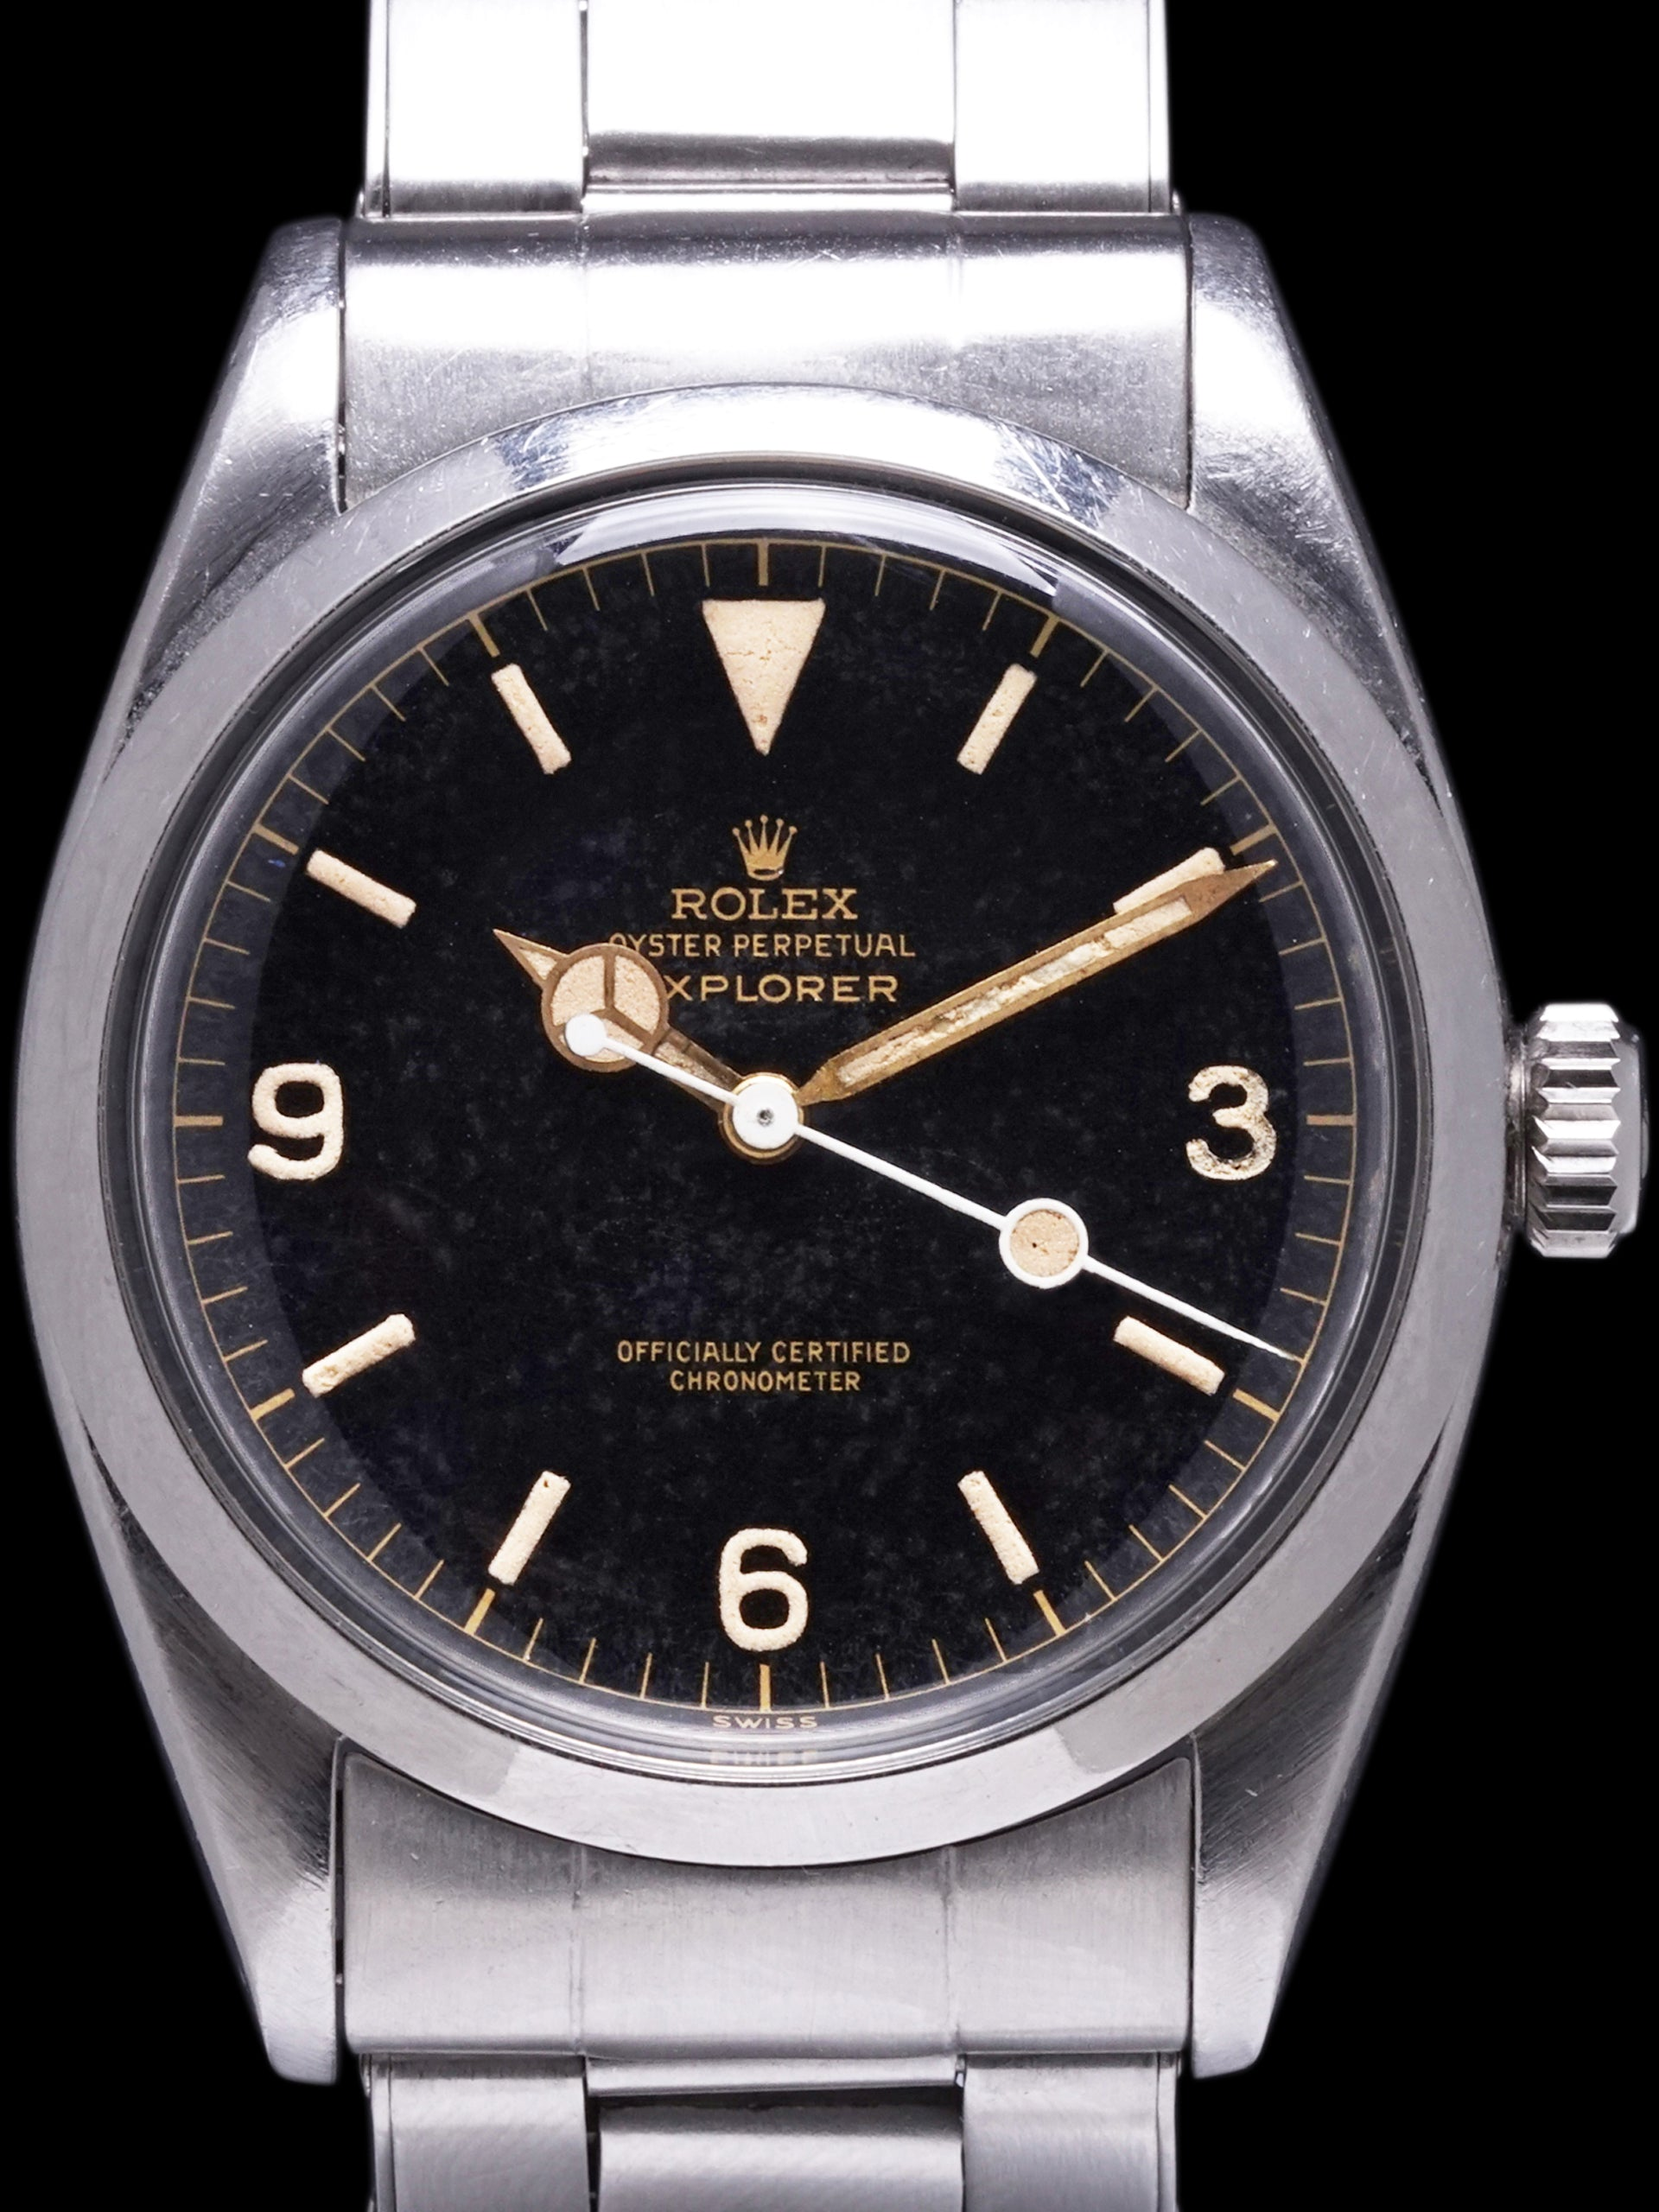 1957 Rolex Explorer I (Ref. 6610) GILT Chapter Ring